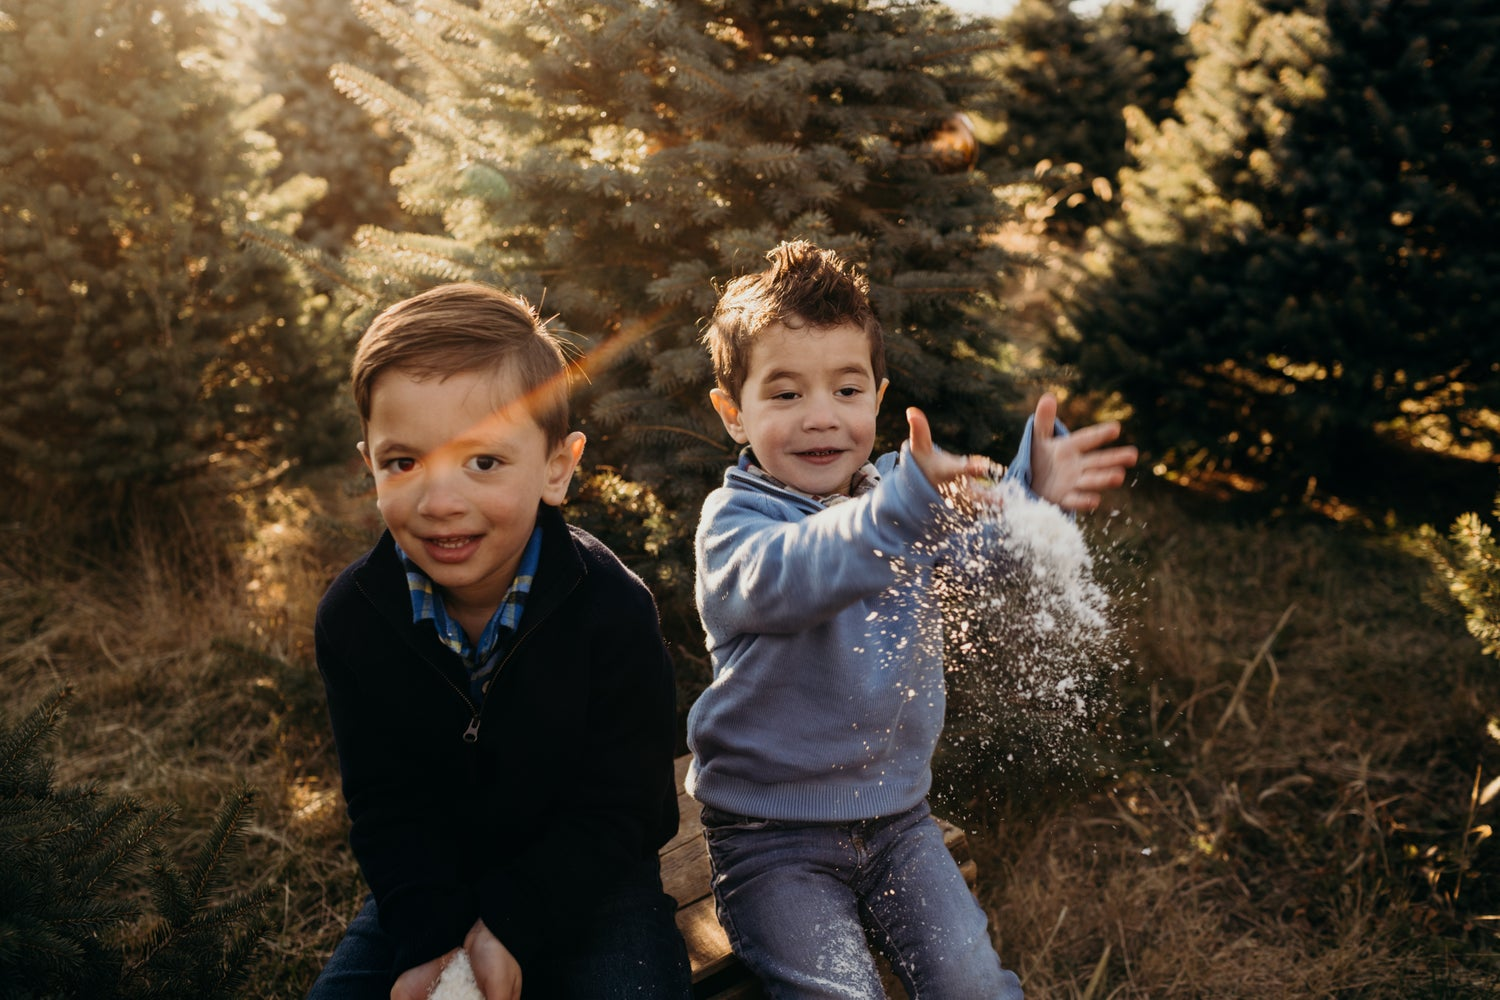 Image of DEPOSIT: 2020 Christmas Minis at GAVER FARM 11/15 (Mt Airy, MD)